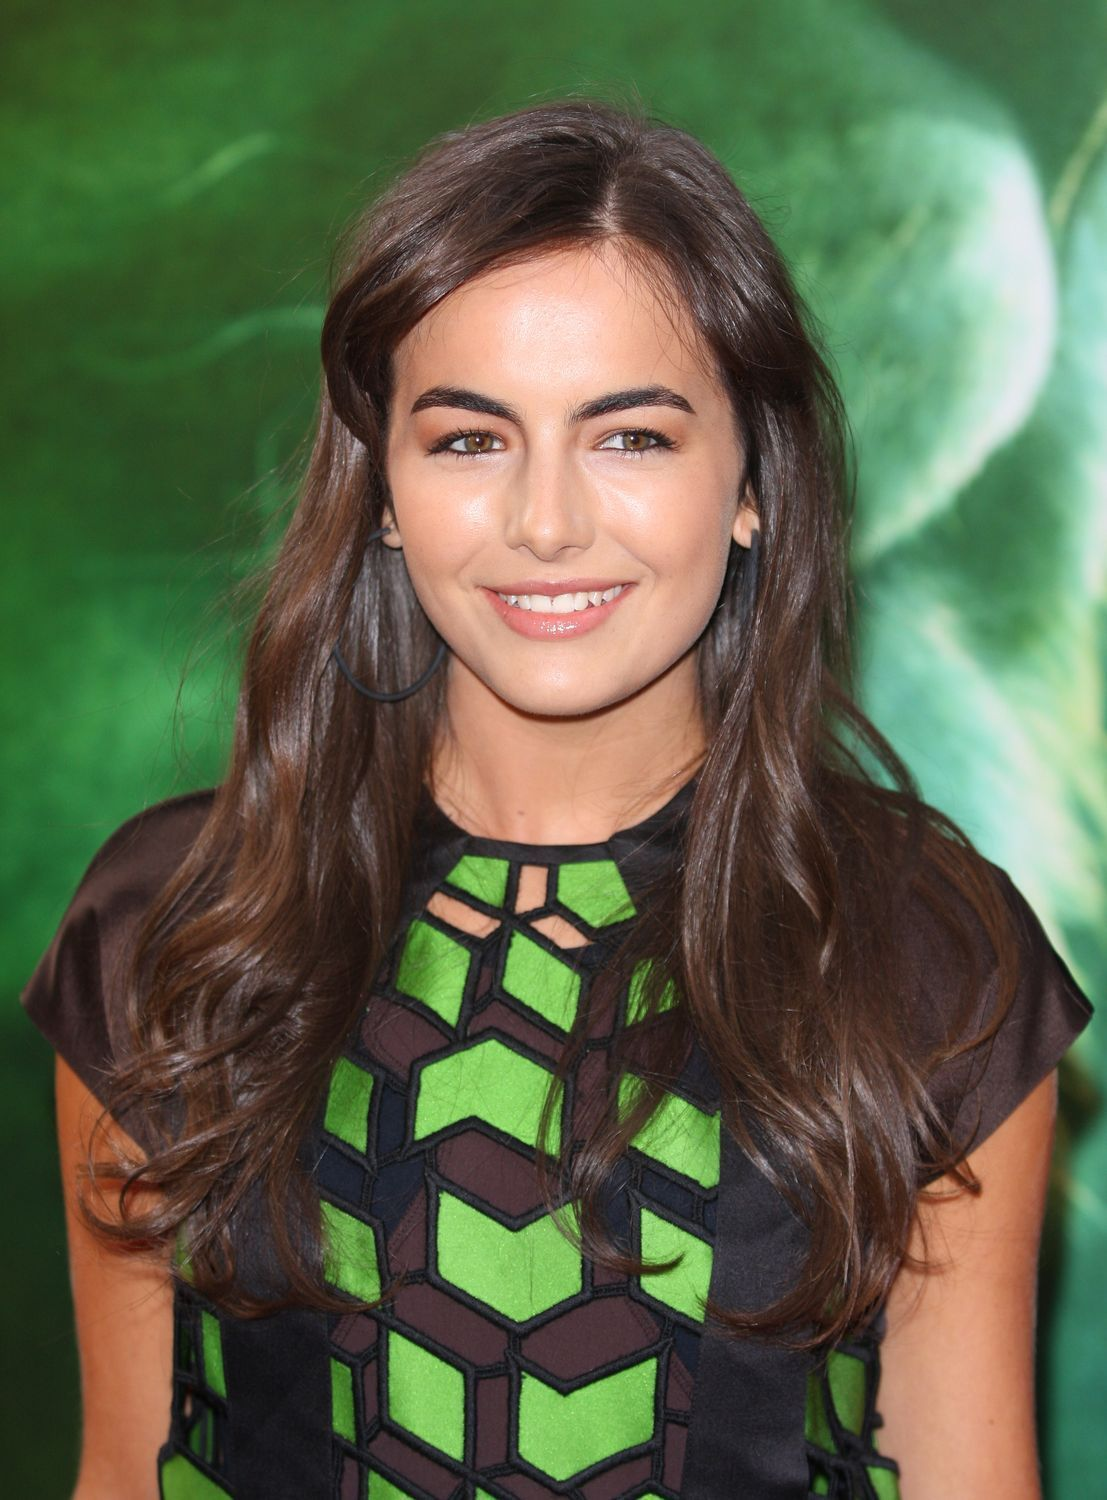 Camilla Belle Romance Hairstyles Pictures, Long Hairstyle 2013, Hairstyle 2013, New Long Hairstyle 2013, Celebrity Long Romance Hairstyles 2123